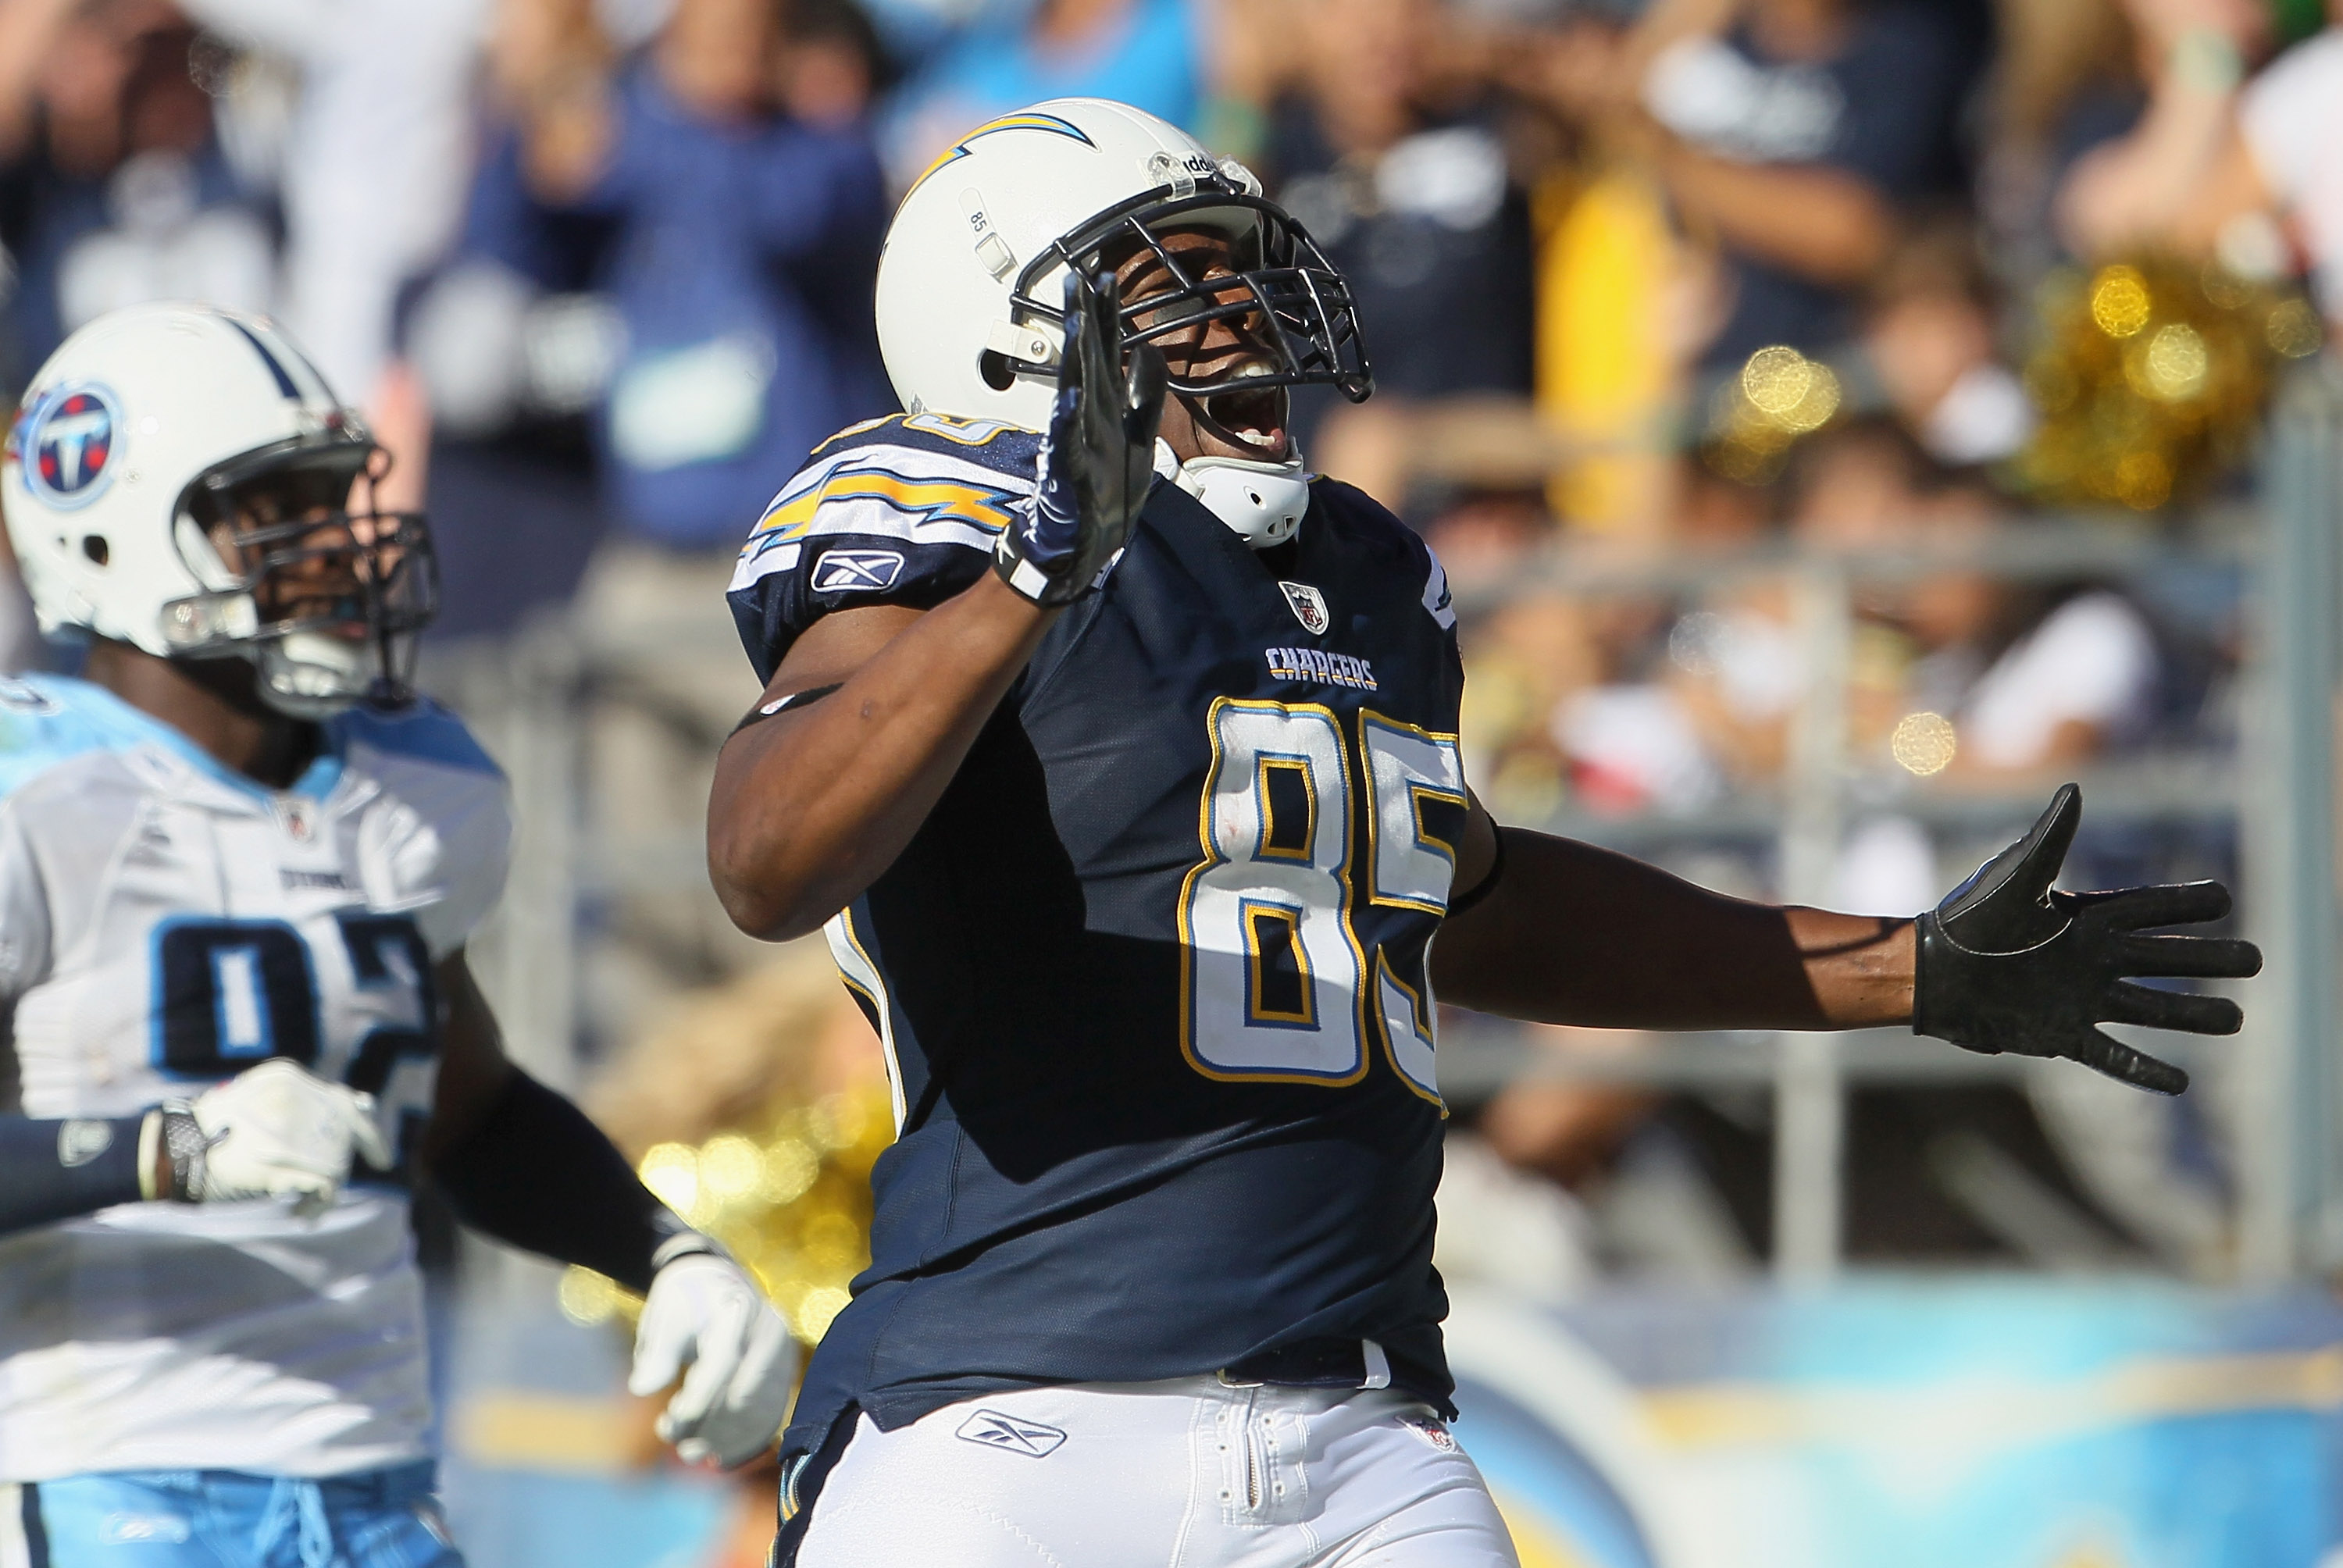 SAN DIEGO - OCTOBER 31:  Tight end Antonio Gates #85 of the San Diego Chargers celebrates a touchdown against the Tennessee Titans in the third quarter at Qualcomm Stadium on October 31, 2010 in San Diego, California. The Chargers defeated the Titans 33-2